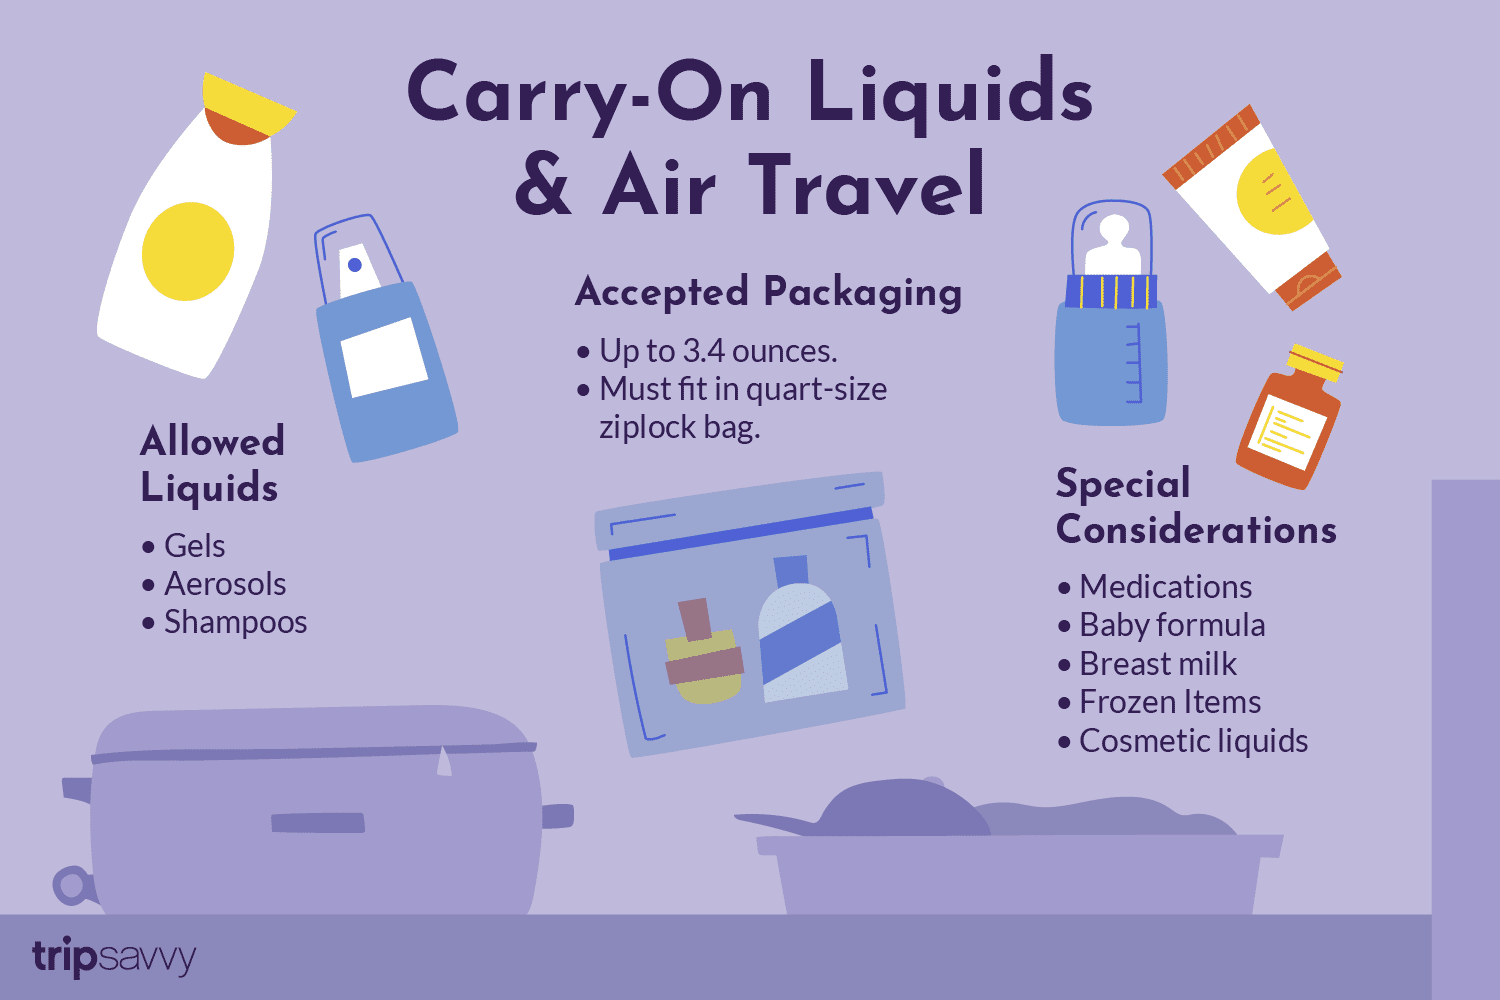 Liquids Allowed In Carry On Luggage